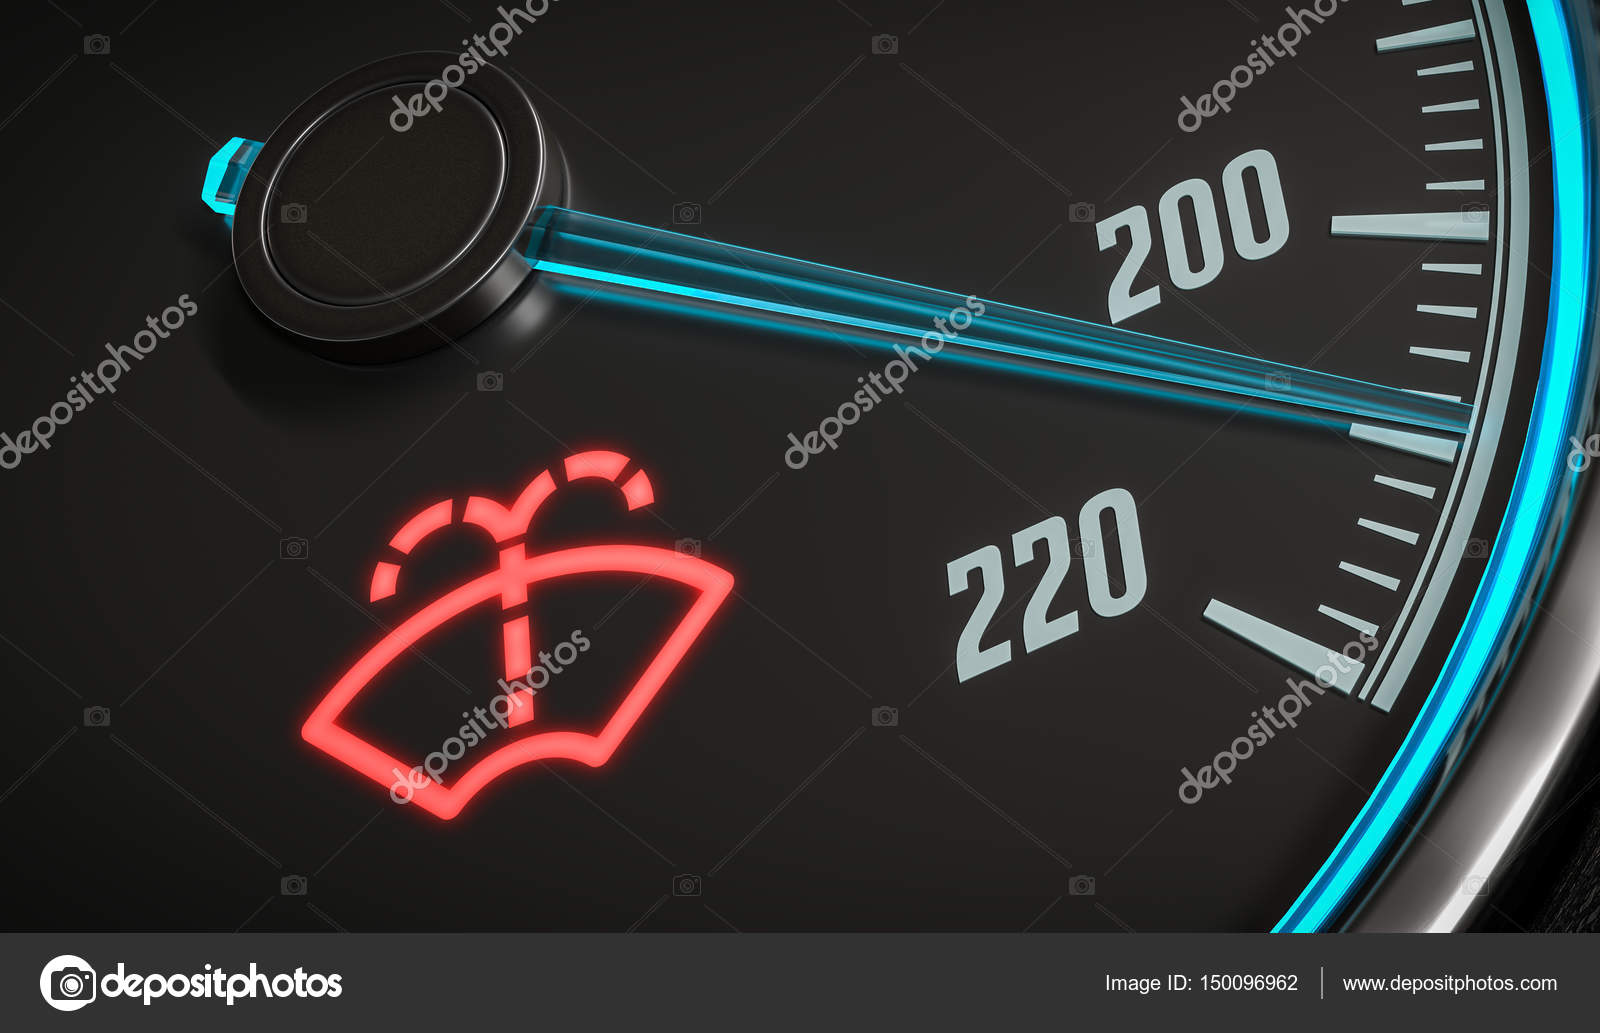 Low Windshield Washer Fluid Indicator Warning In Car Dashboard 3d